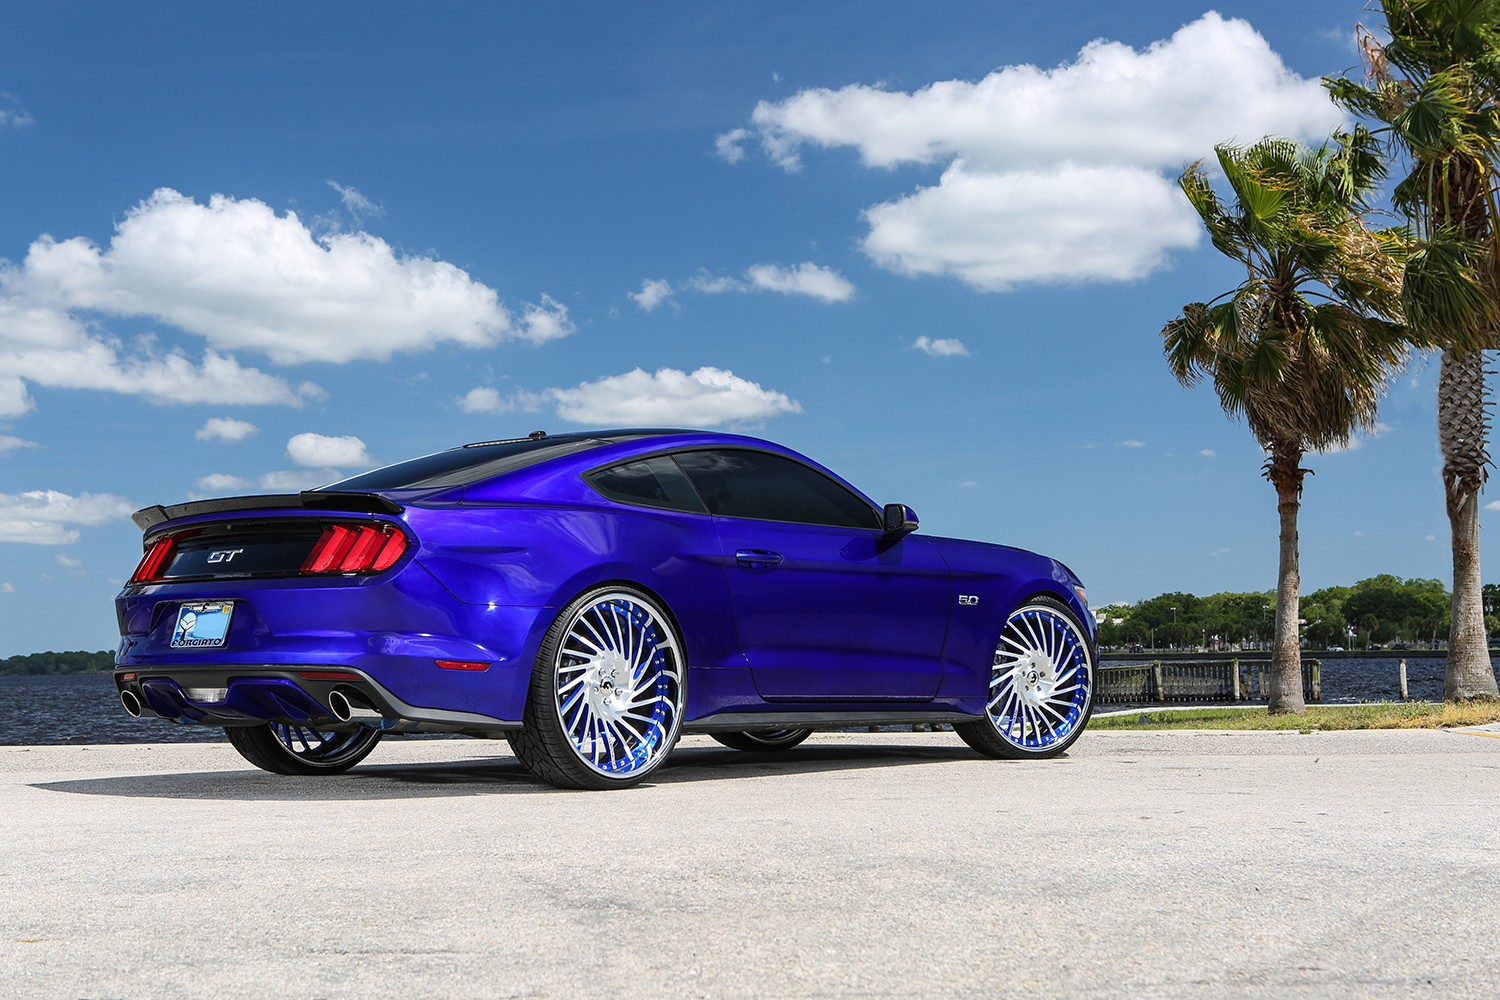 royal-pony-express-ford-mustang-by-forgiato-has-oversized-wheels_8